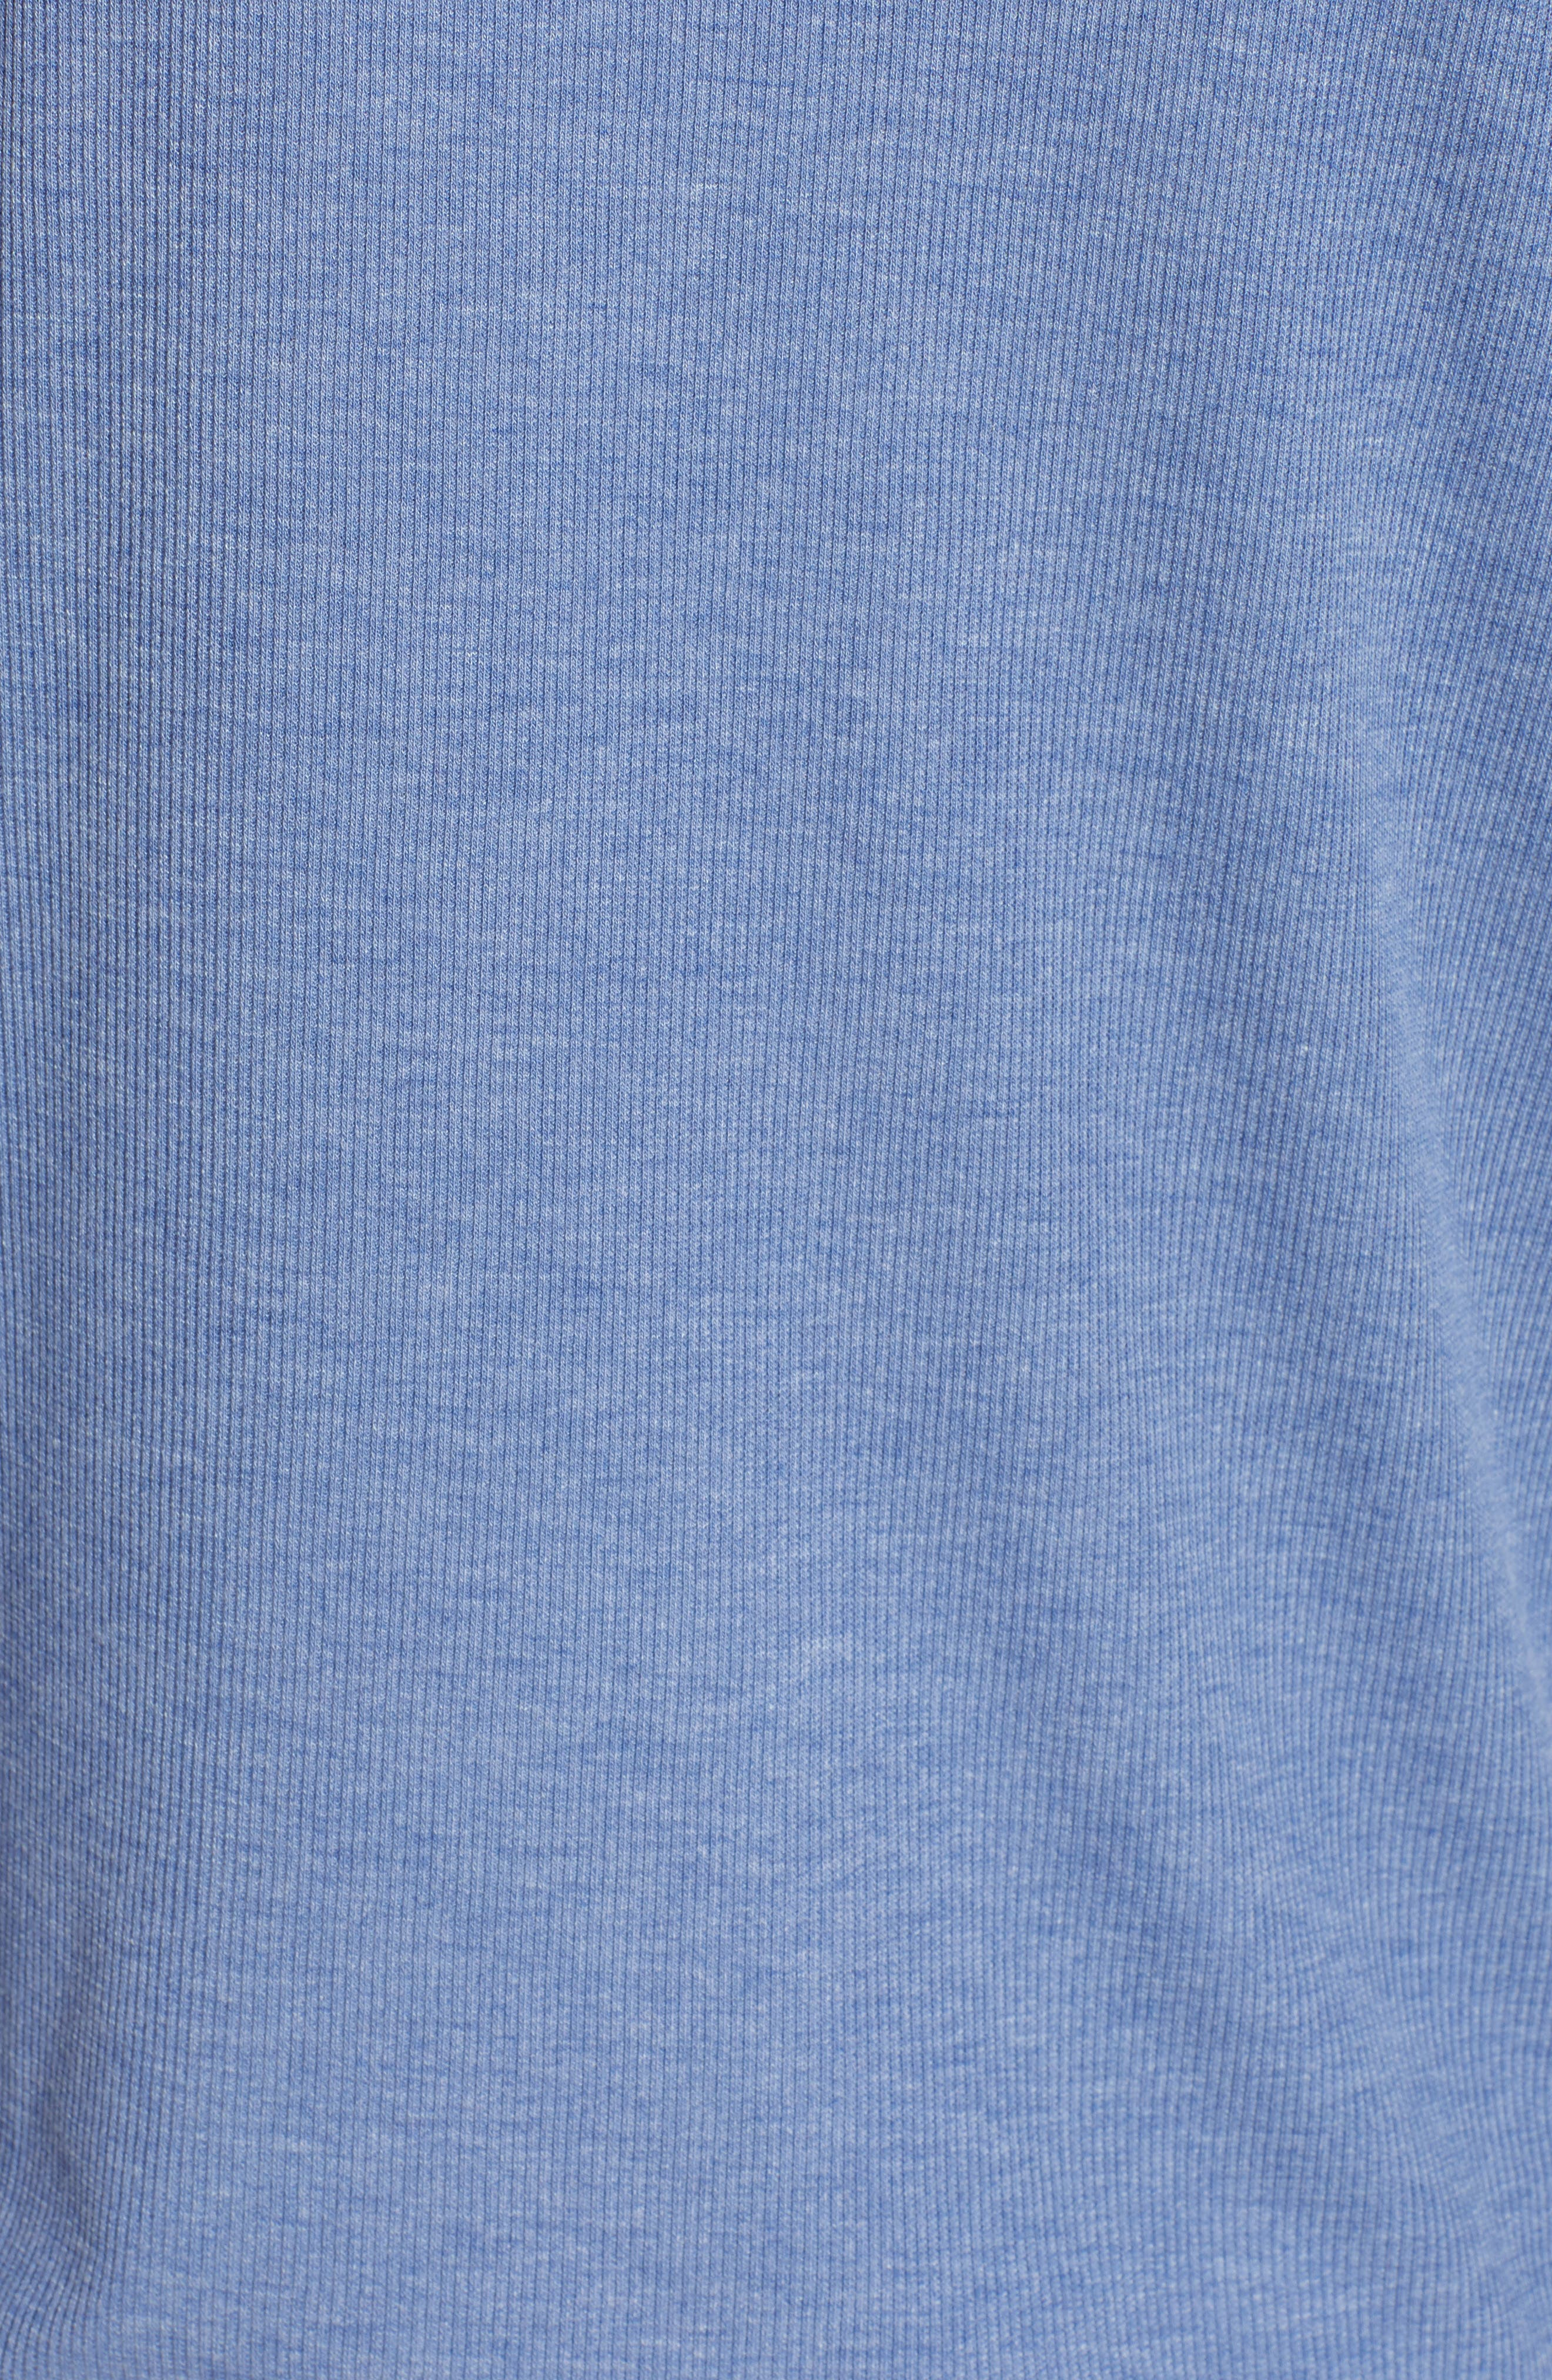 Campbell Los Angeles Dodgers Rib Knit Hooded Top,                             Alternate thumbnail 6, color,                             Bleacher Blue